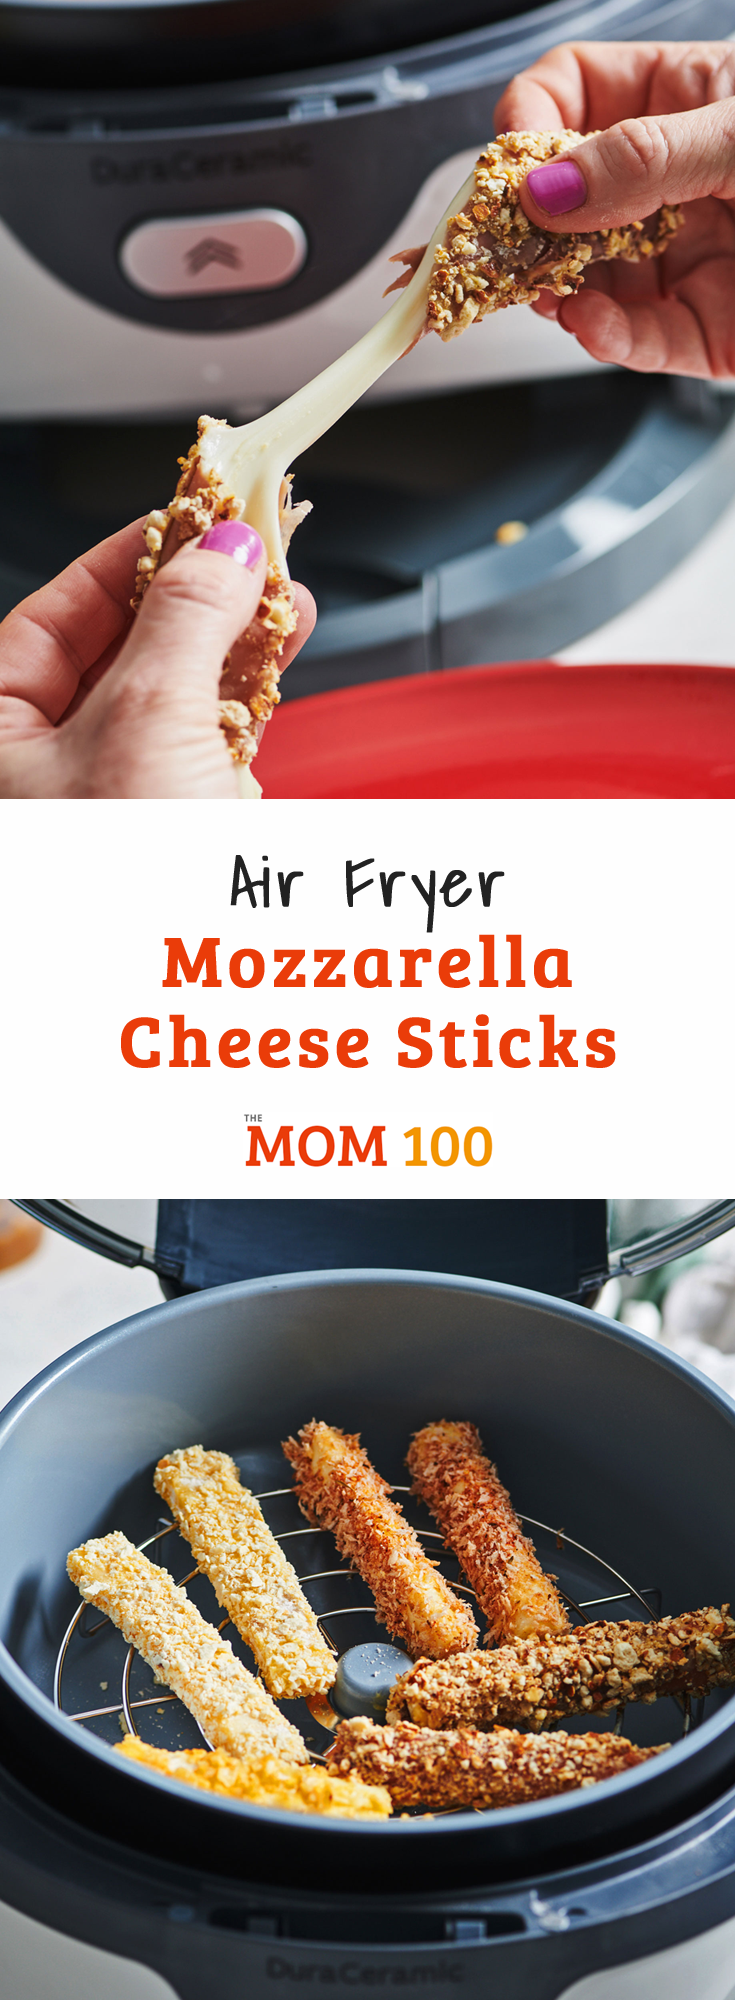 Air Fryer Mozzarella Cheese Sticks Recipe WW recipes